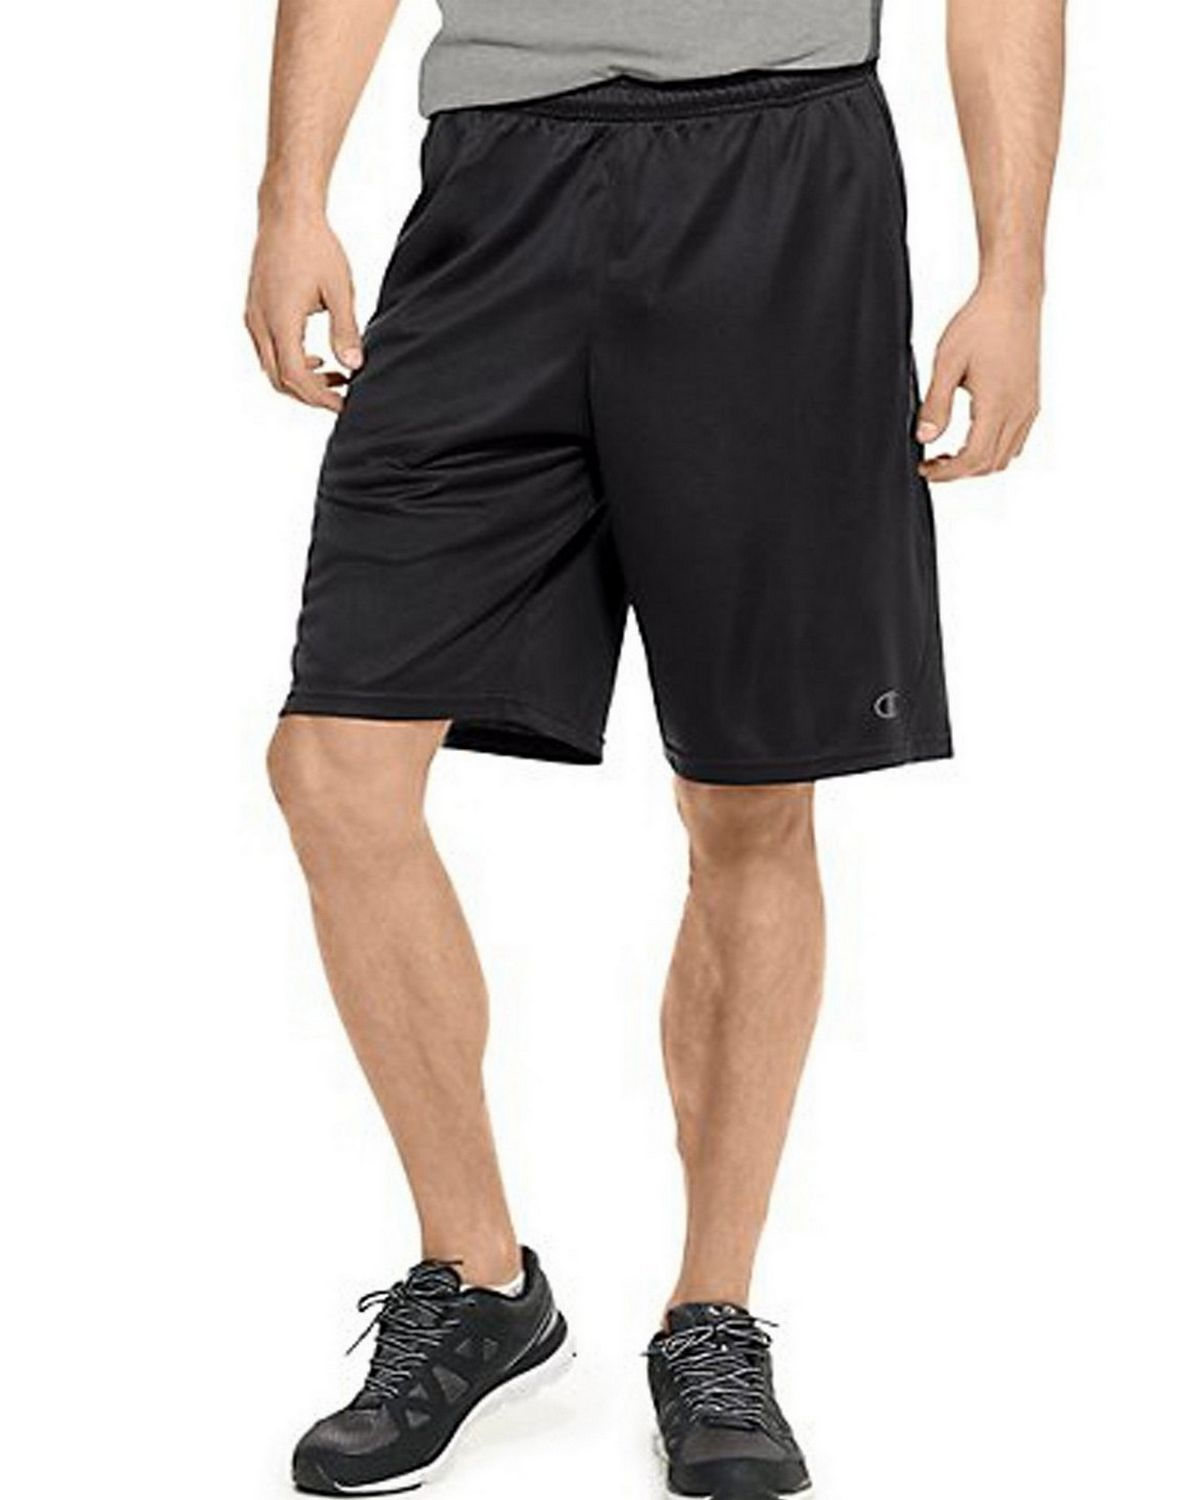 Champion 86703 Vapor PowerTrain Knit Shorts - Black - S 86703